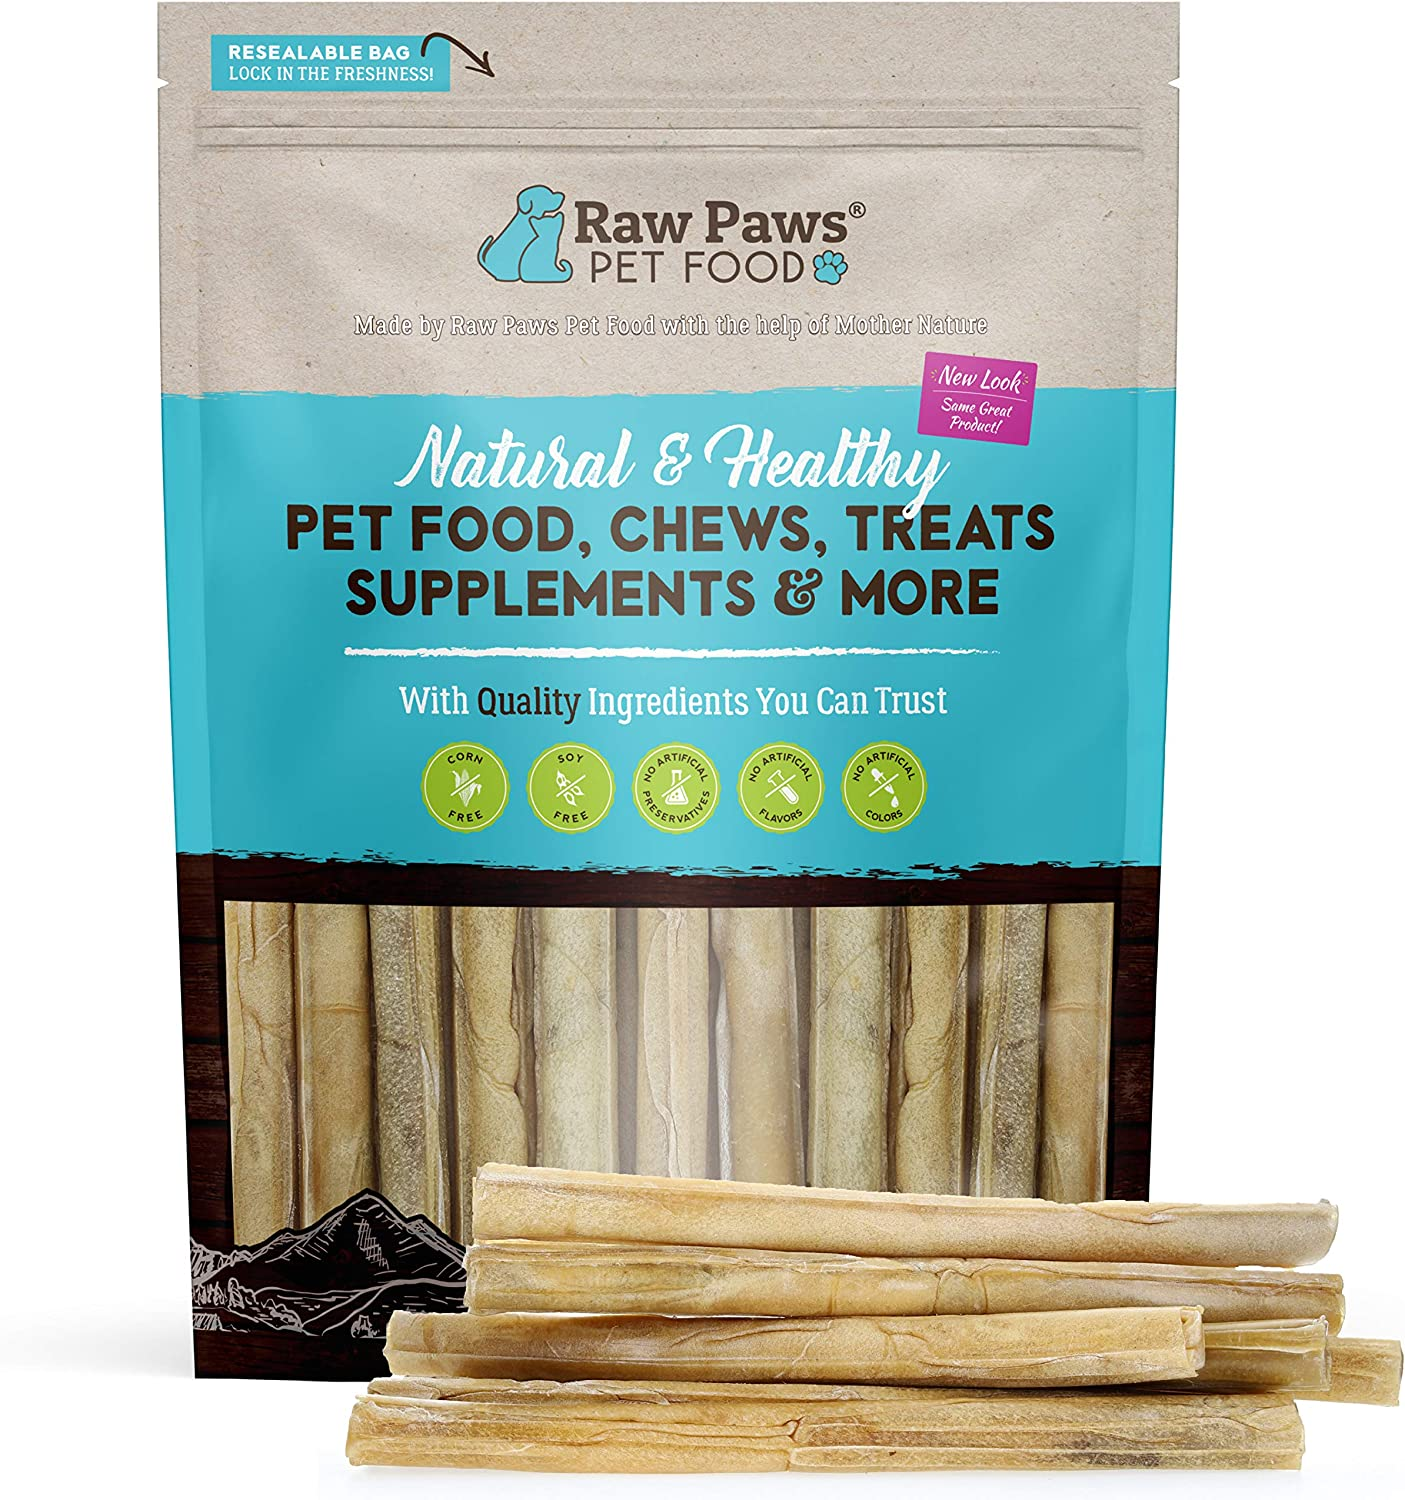 Raw Paws Pet Premium High quality new 10-inch Compressed for Rawhide Dogs Sticks OFFicial shop